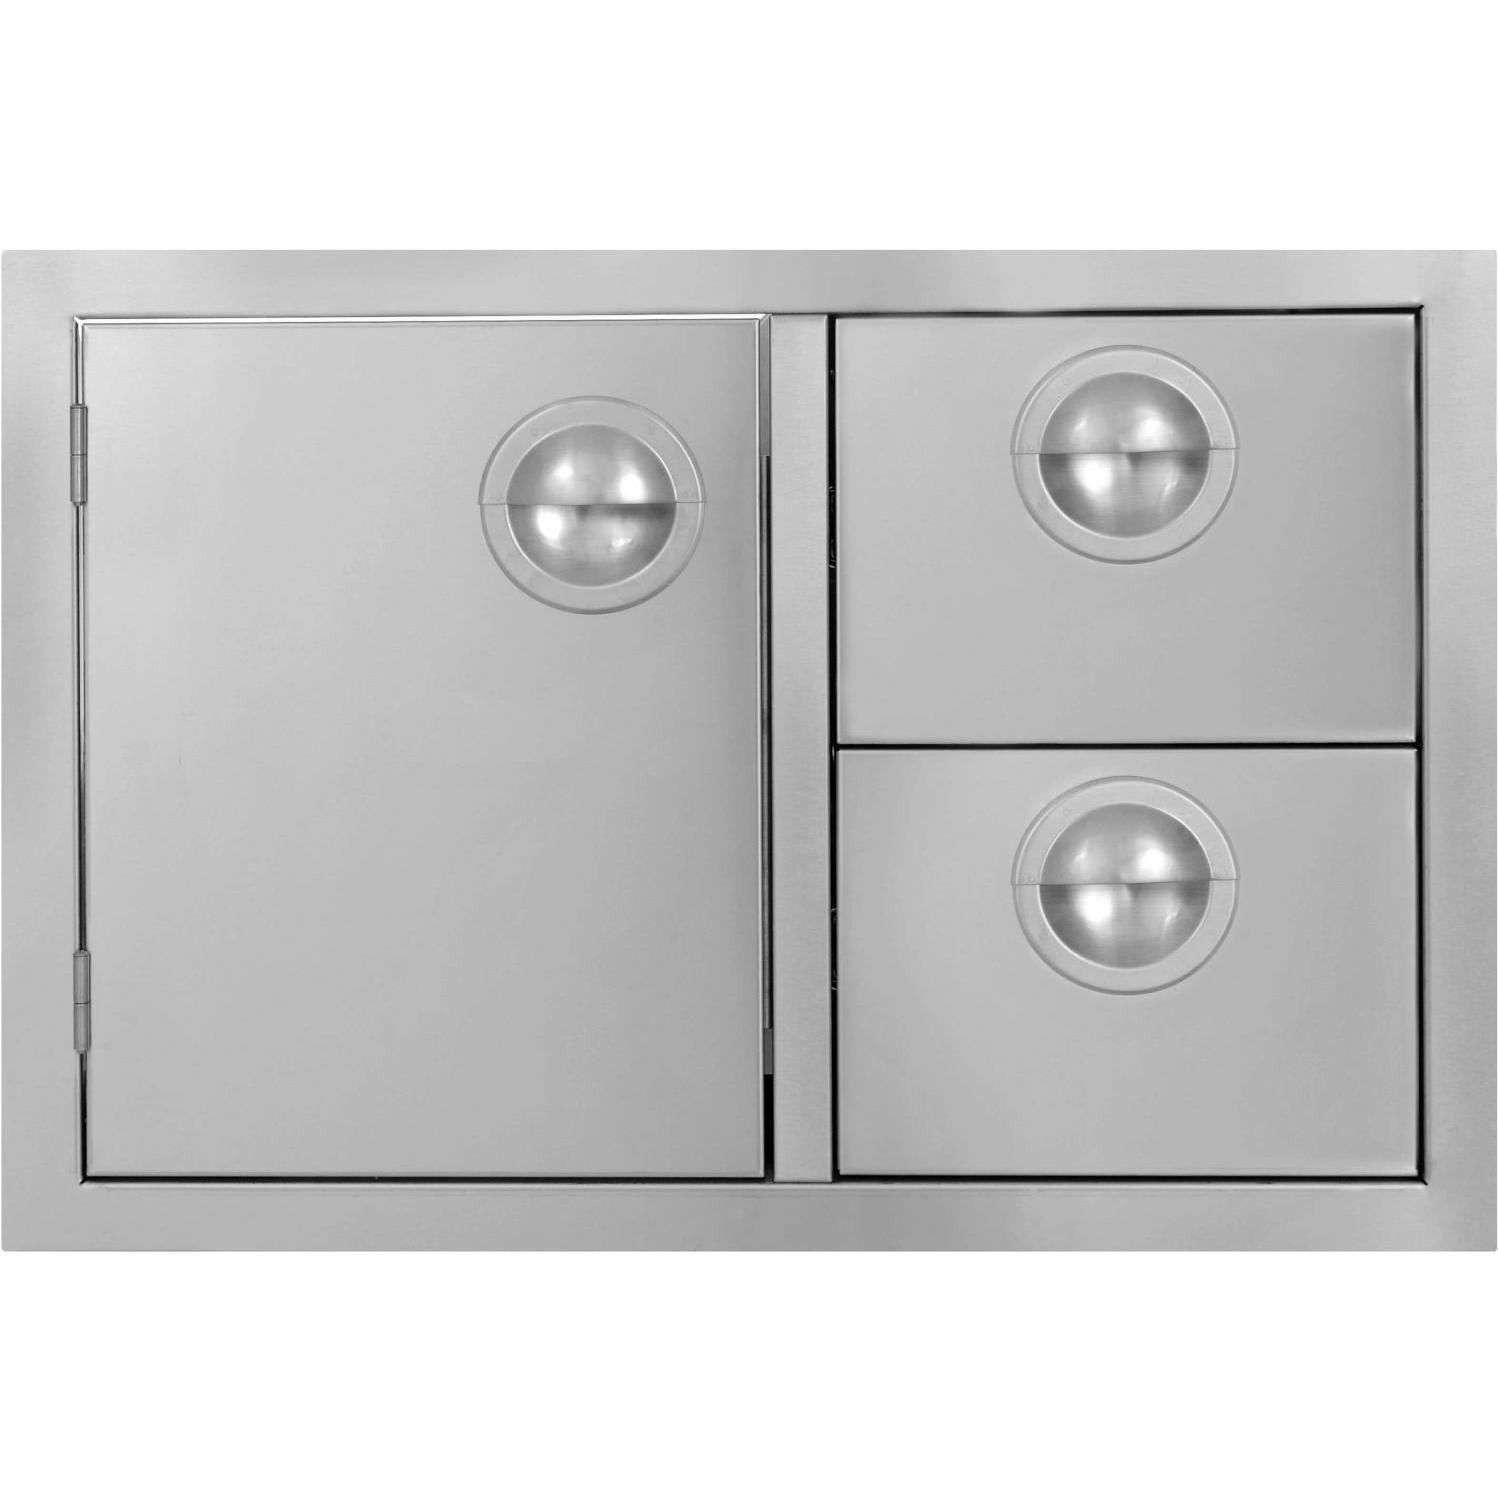 Bbqguys.com Portofino Series 30-inch Stainless Steel Double Drawer & Roll-out Propane Tank Storage Combo